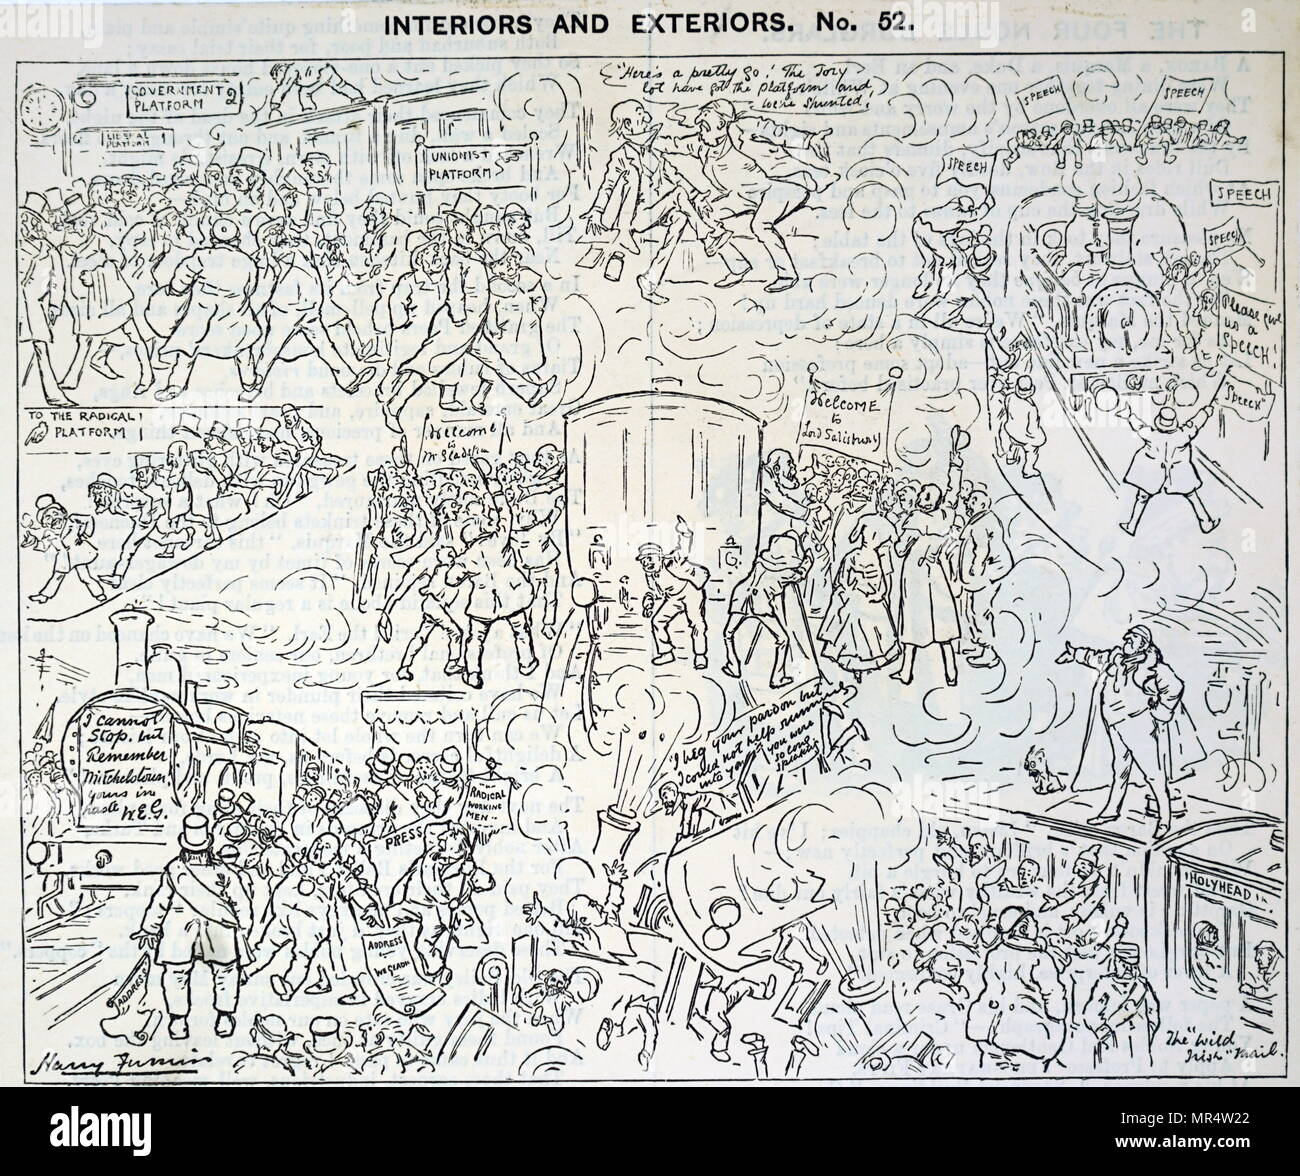 Cartoon concerning the role of Lord Salisbury in the 1864 Reform Bill.  Salisbury, (3 February 1830 – 22 August 1903),was a British statesman of the Conservative Party, serving as Prime Minister three times for a total of over thirteen years. - Stock Image